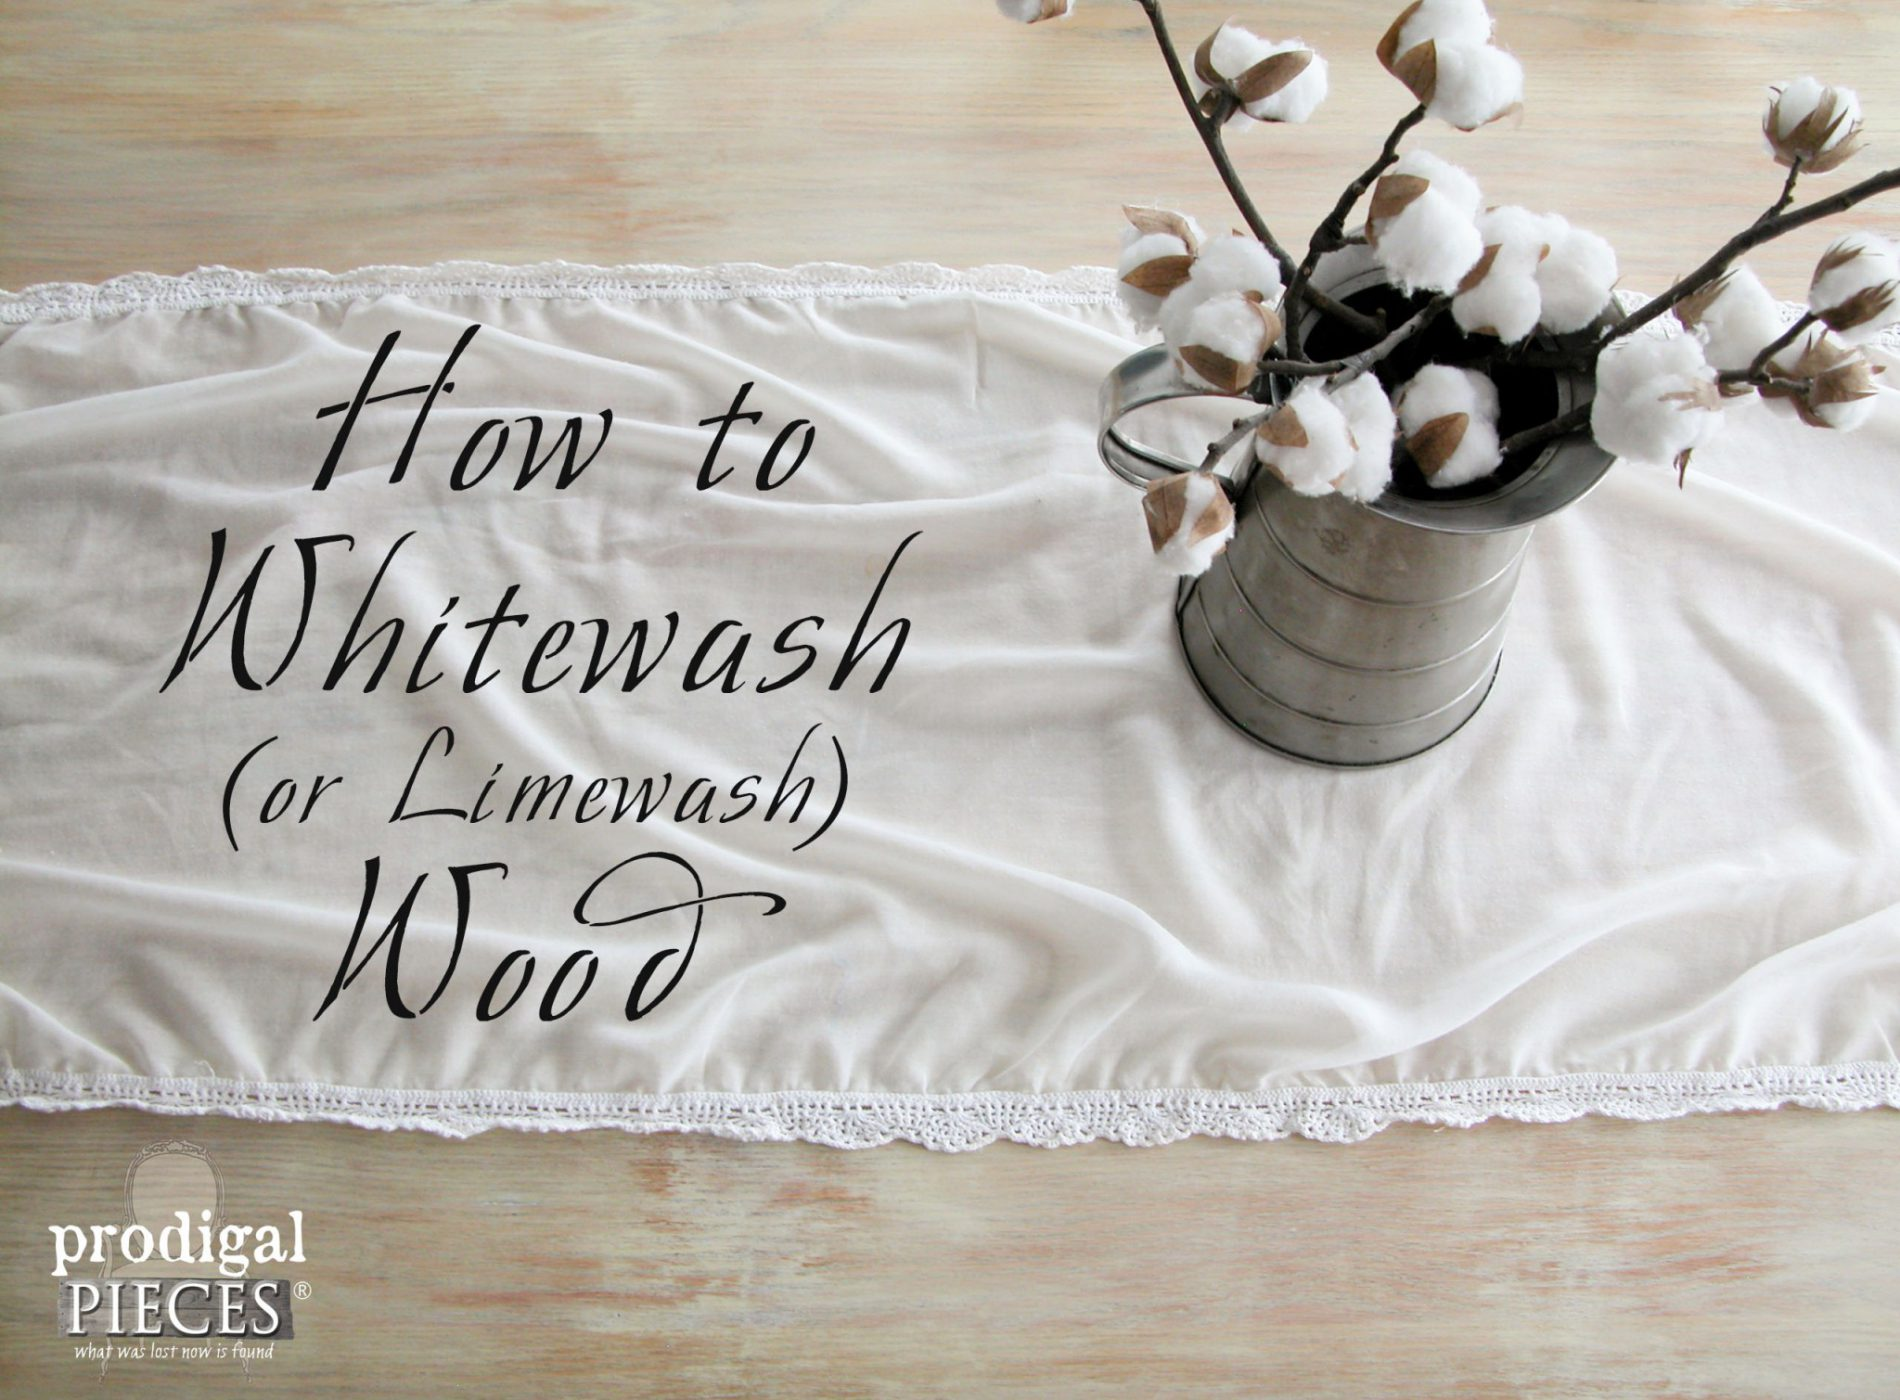 How to Whitewash (or Limewash) Wood by Prodigal Pieces | www.prodiglpieces.com